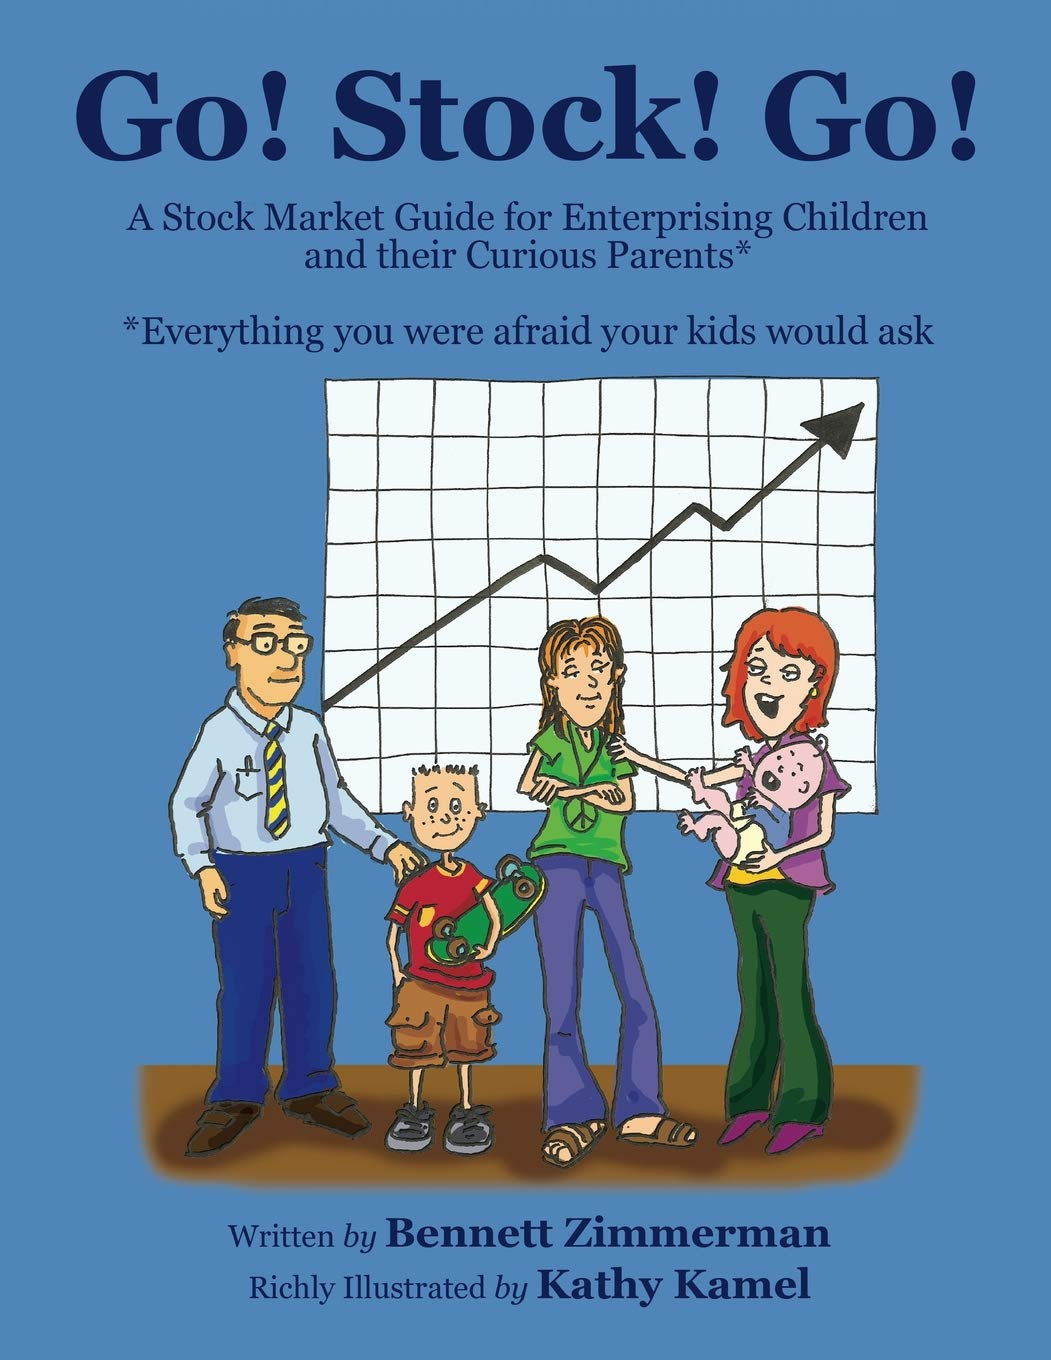 Stock market investment cartoons for kids trailing stop forex